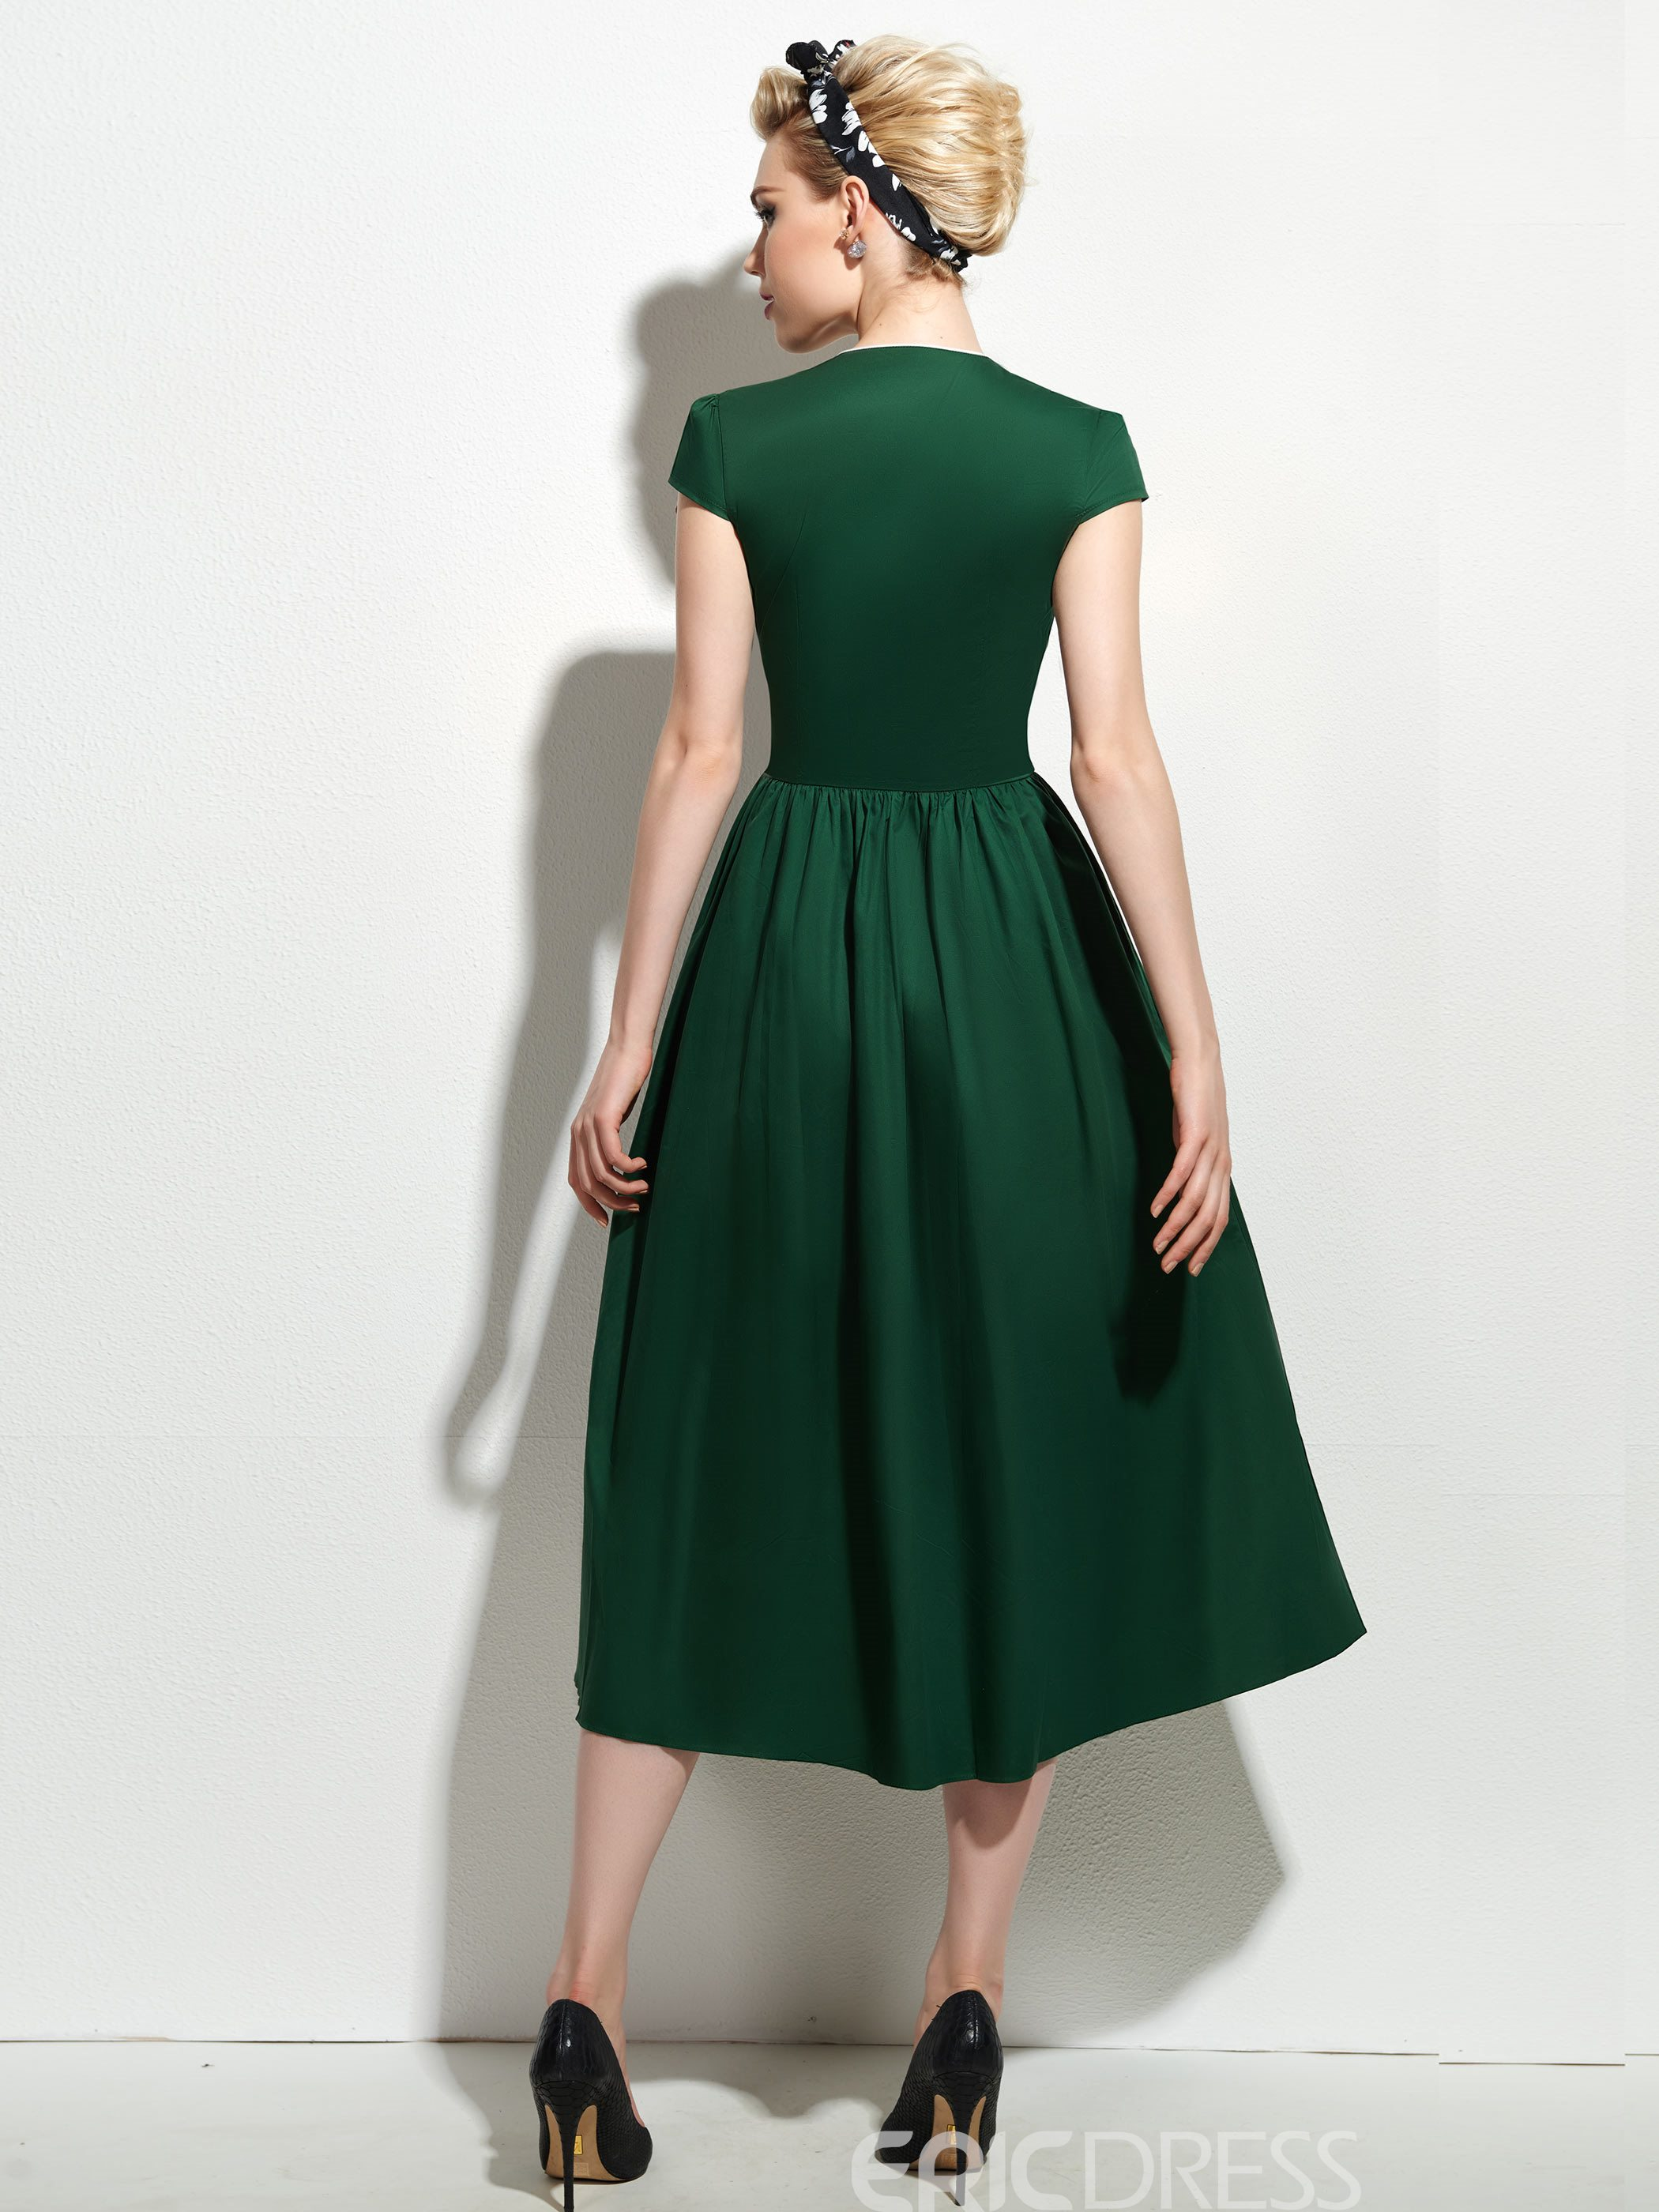 Ericdress Rockabilly Style Green High Waist Casual Dress